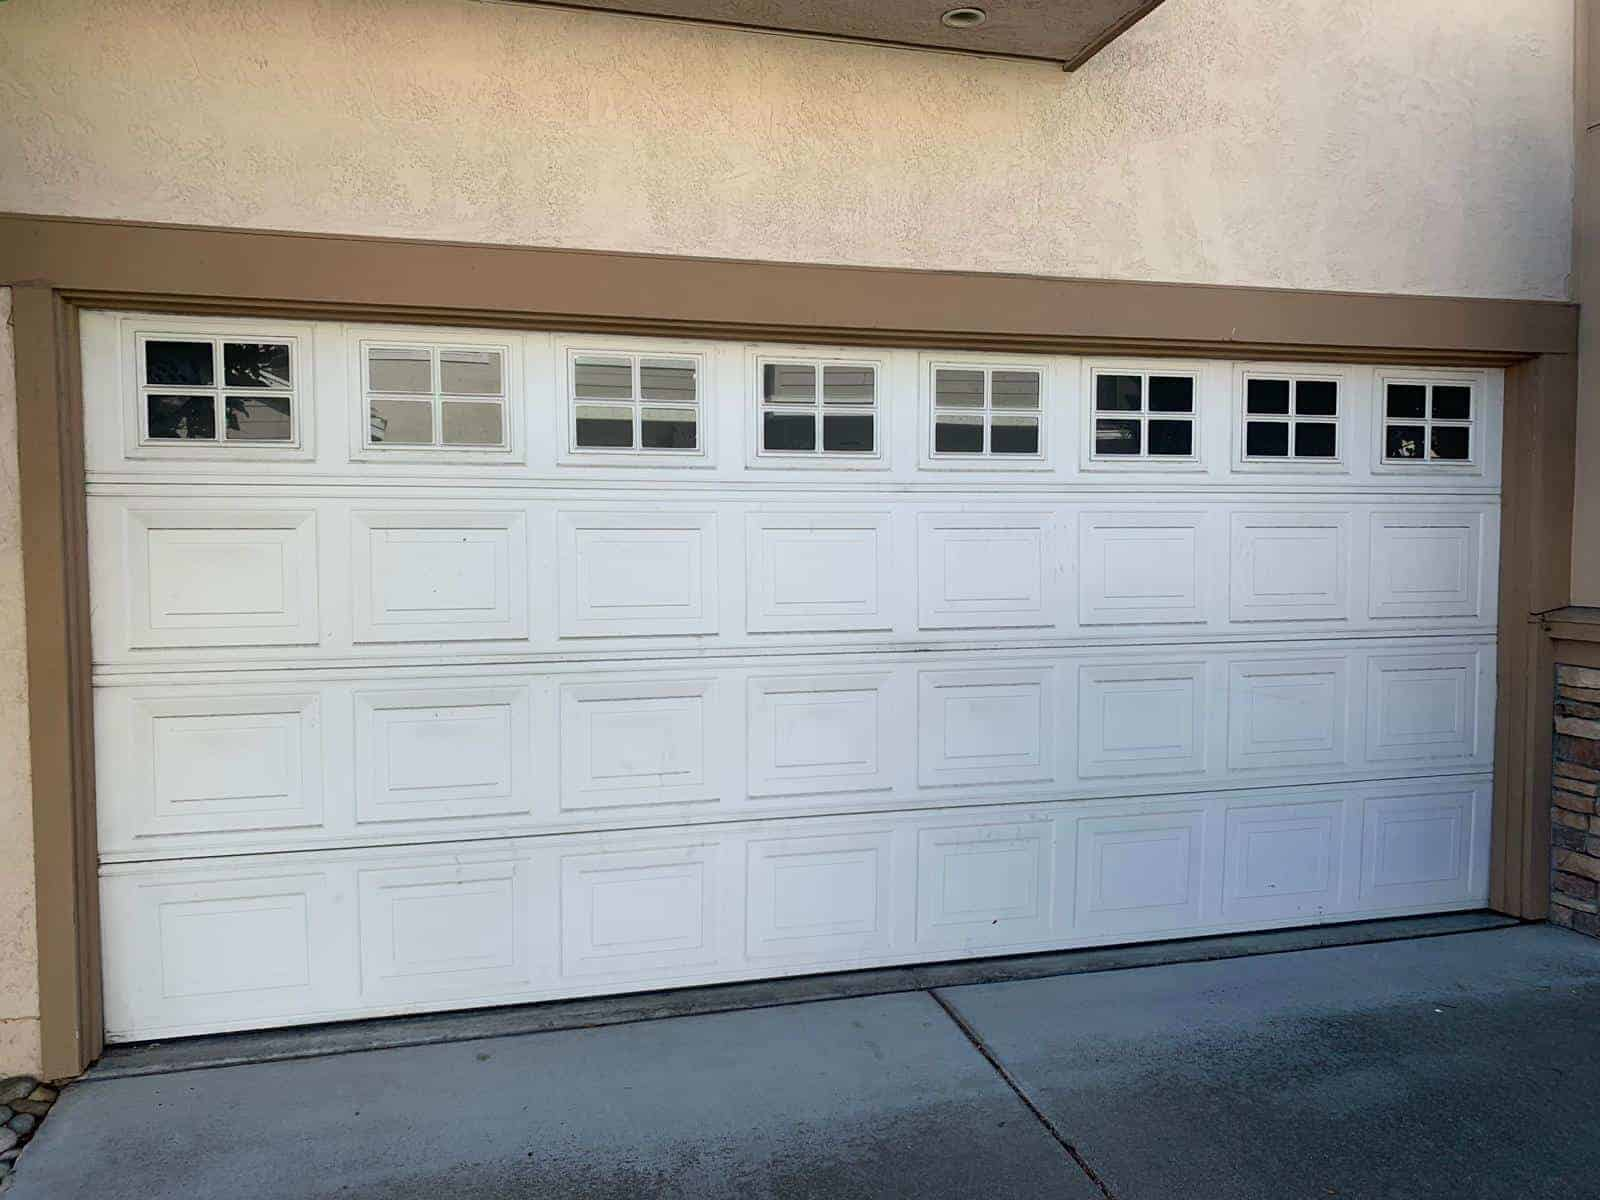 Bell CA Garage Door Repair & Replacement